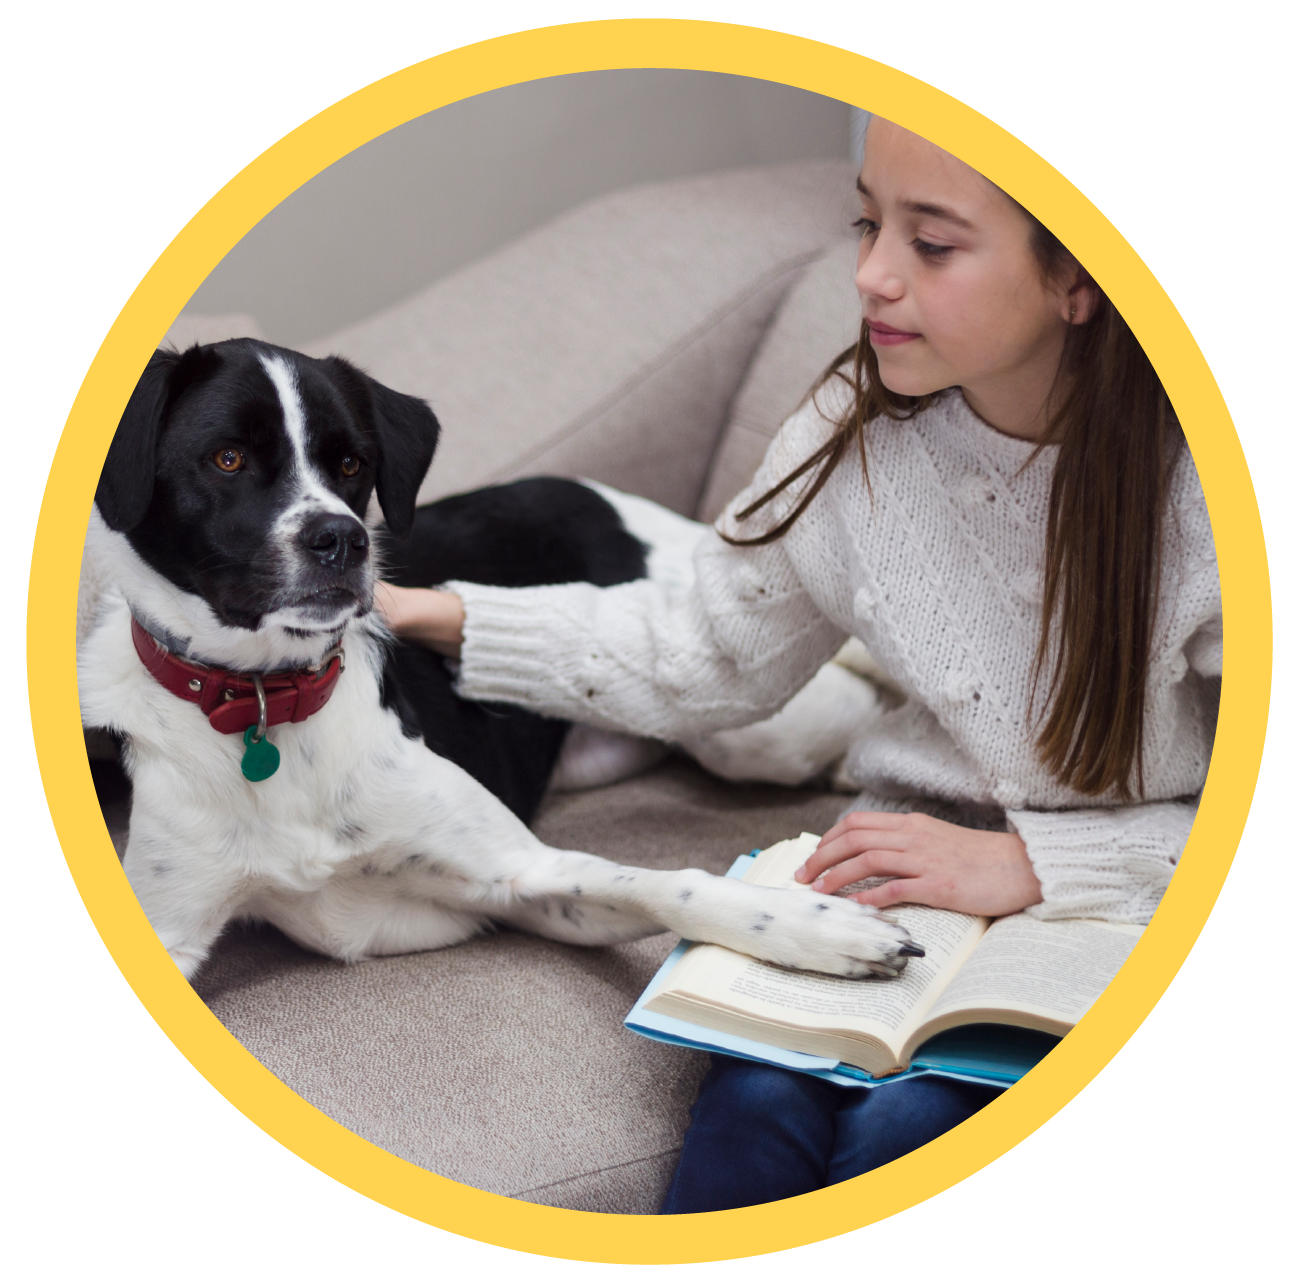 Tales for Tails - This one-hour program provides kids, ages 6-12 years, with an educational, interactive experience reading to animals at Denver Dumb Friends League.October 15th 4:30-5:30pm and 5:45-6:45pm